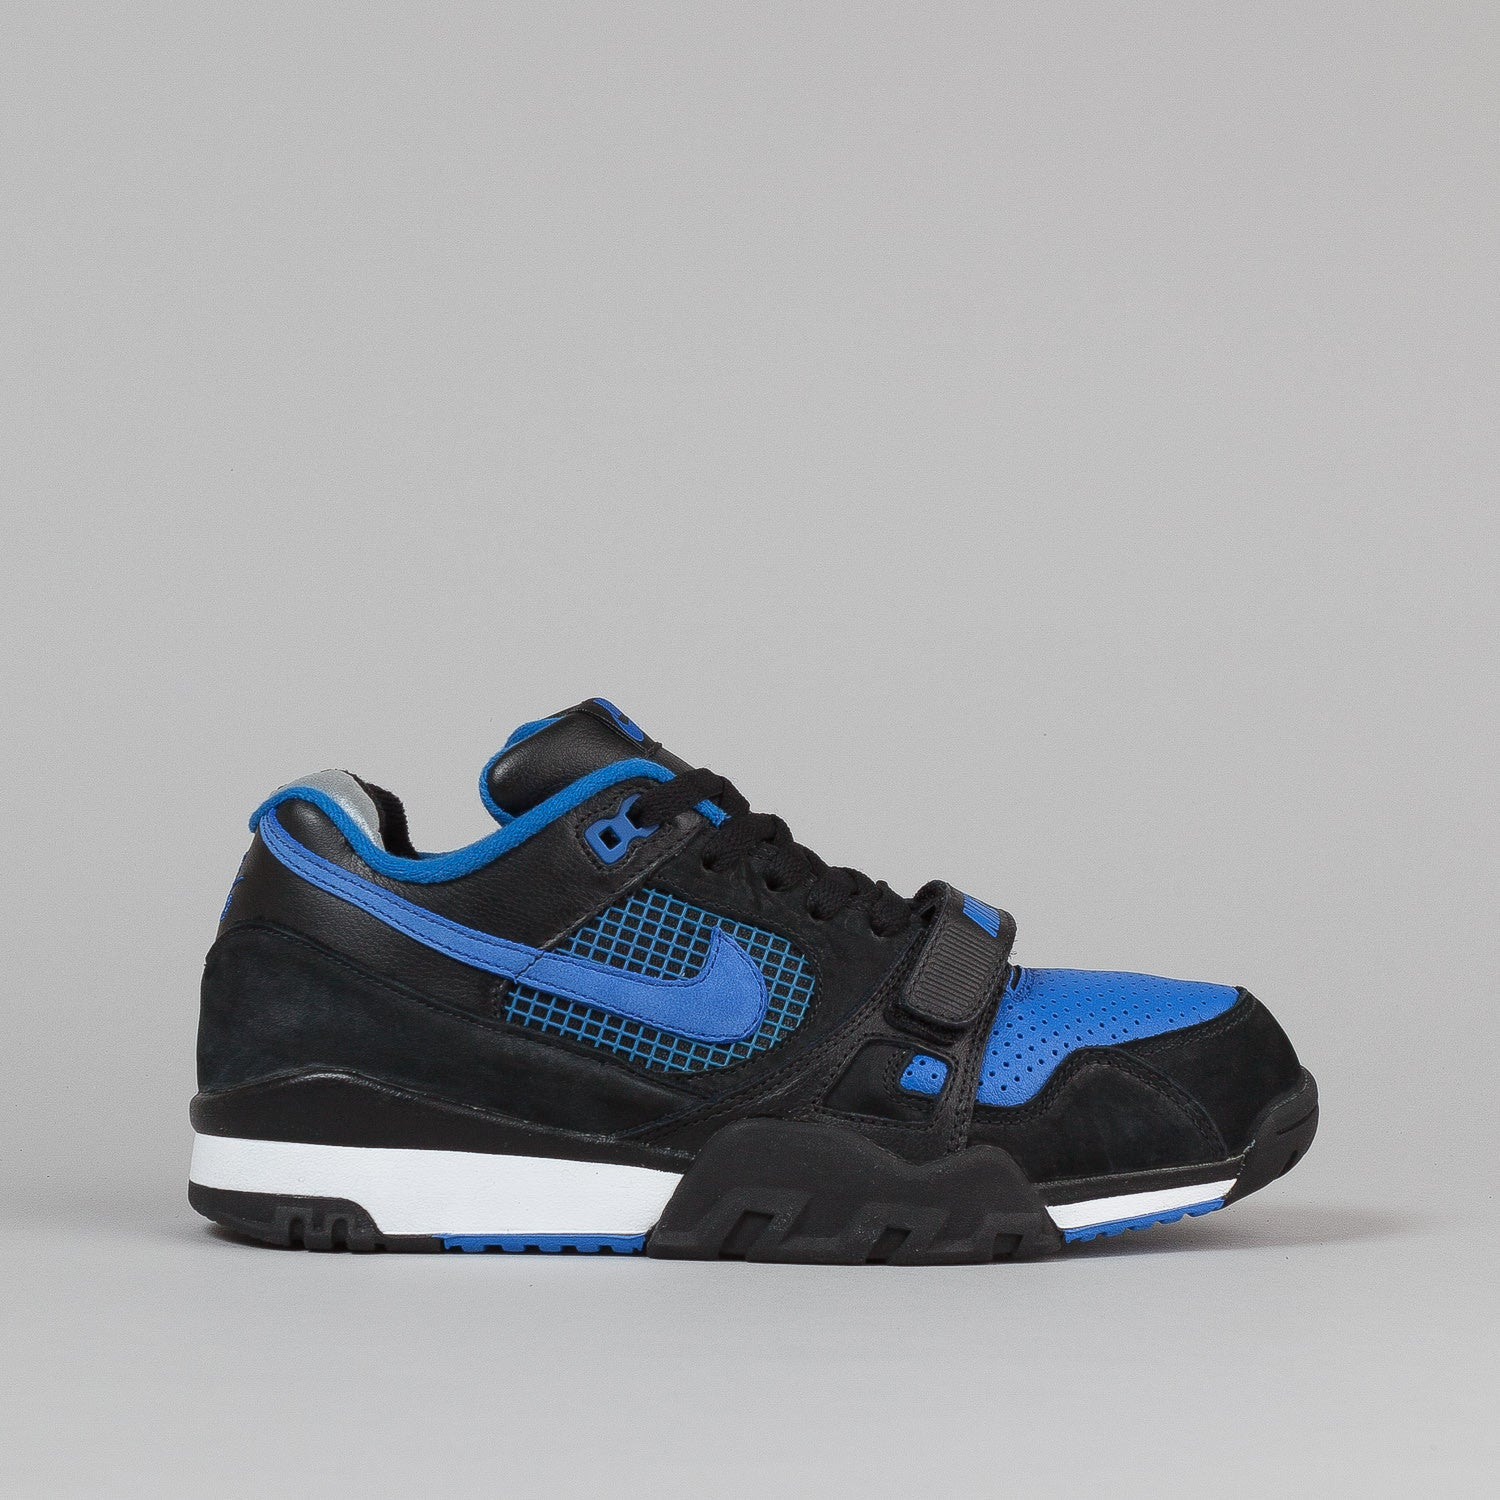 Nike SB Air Trainer 2 Shoes